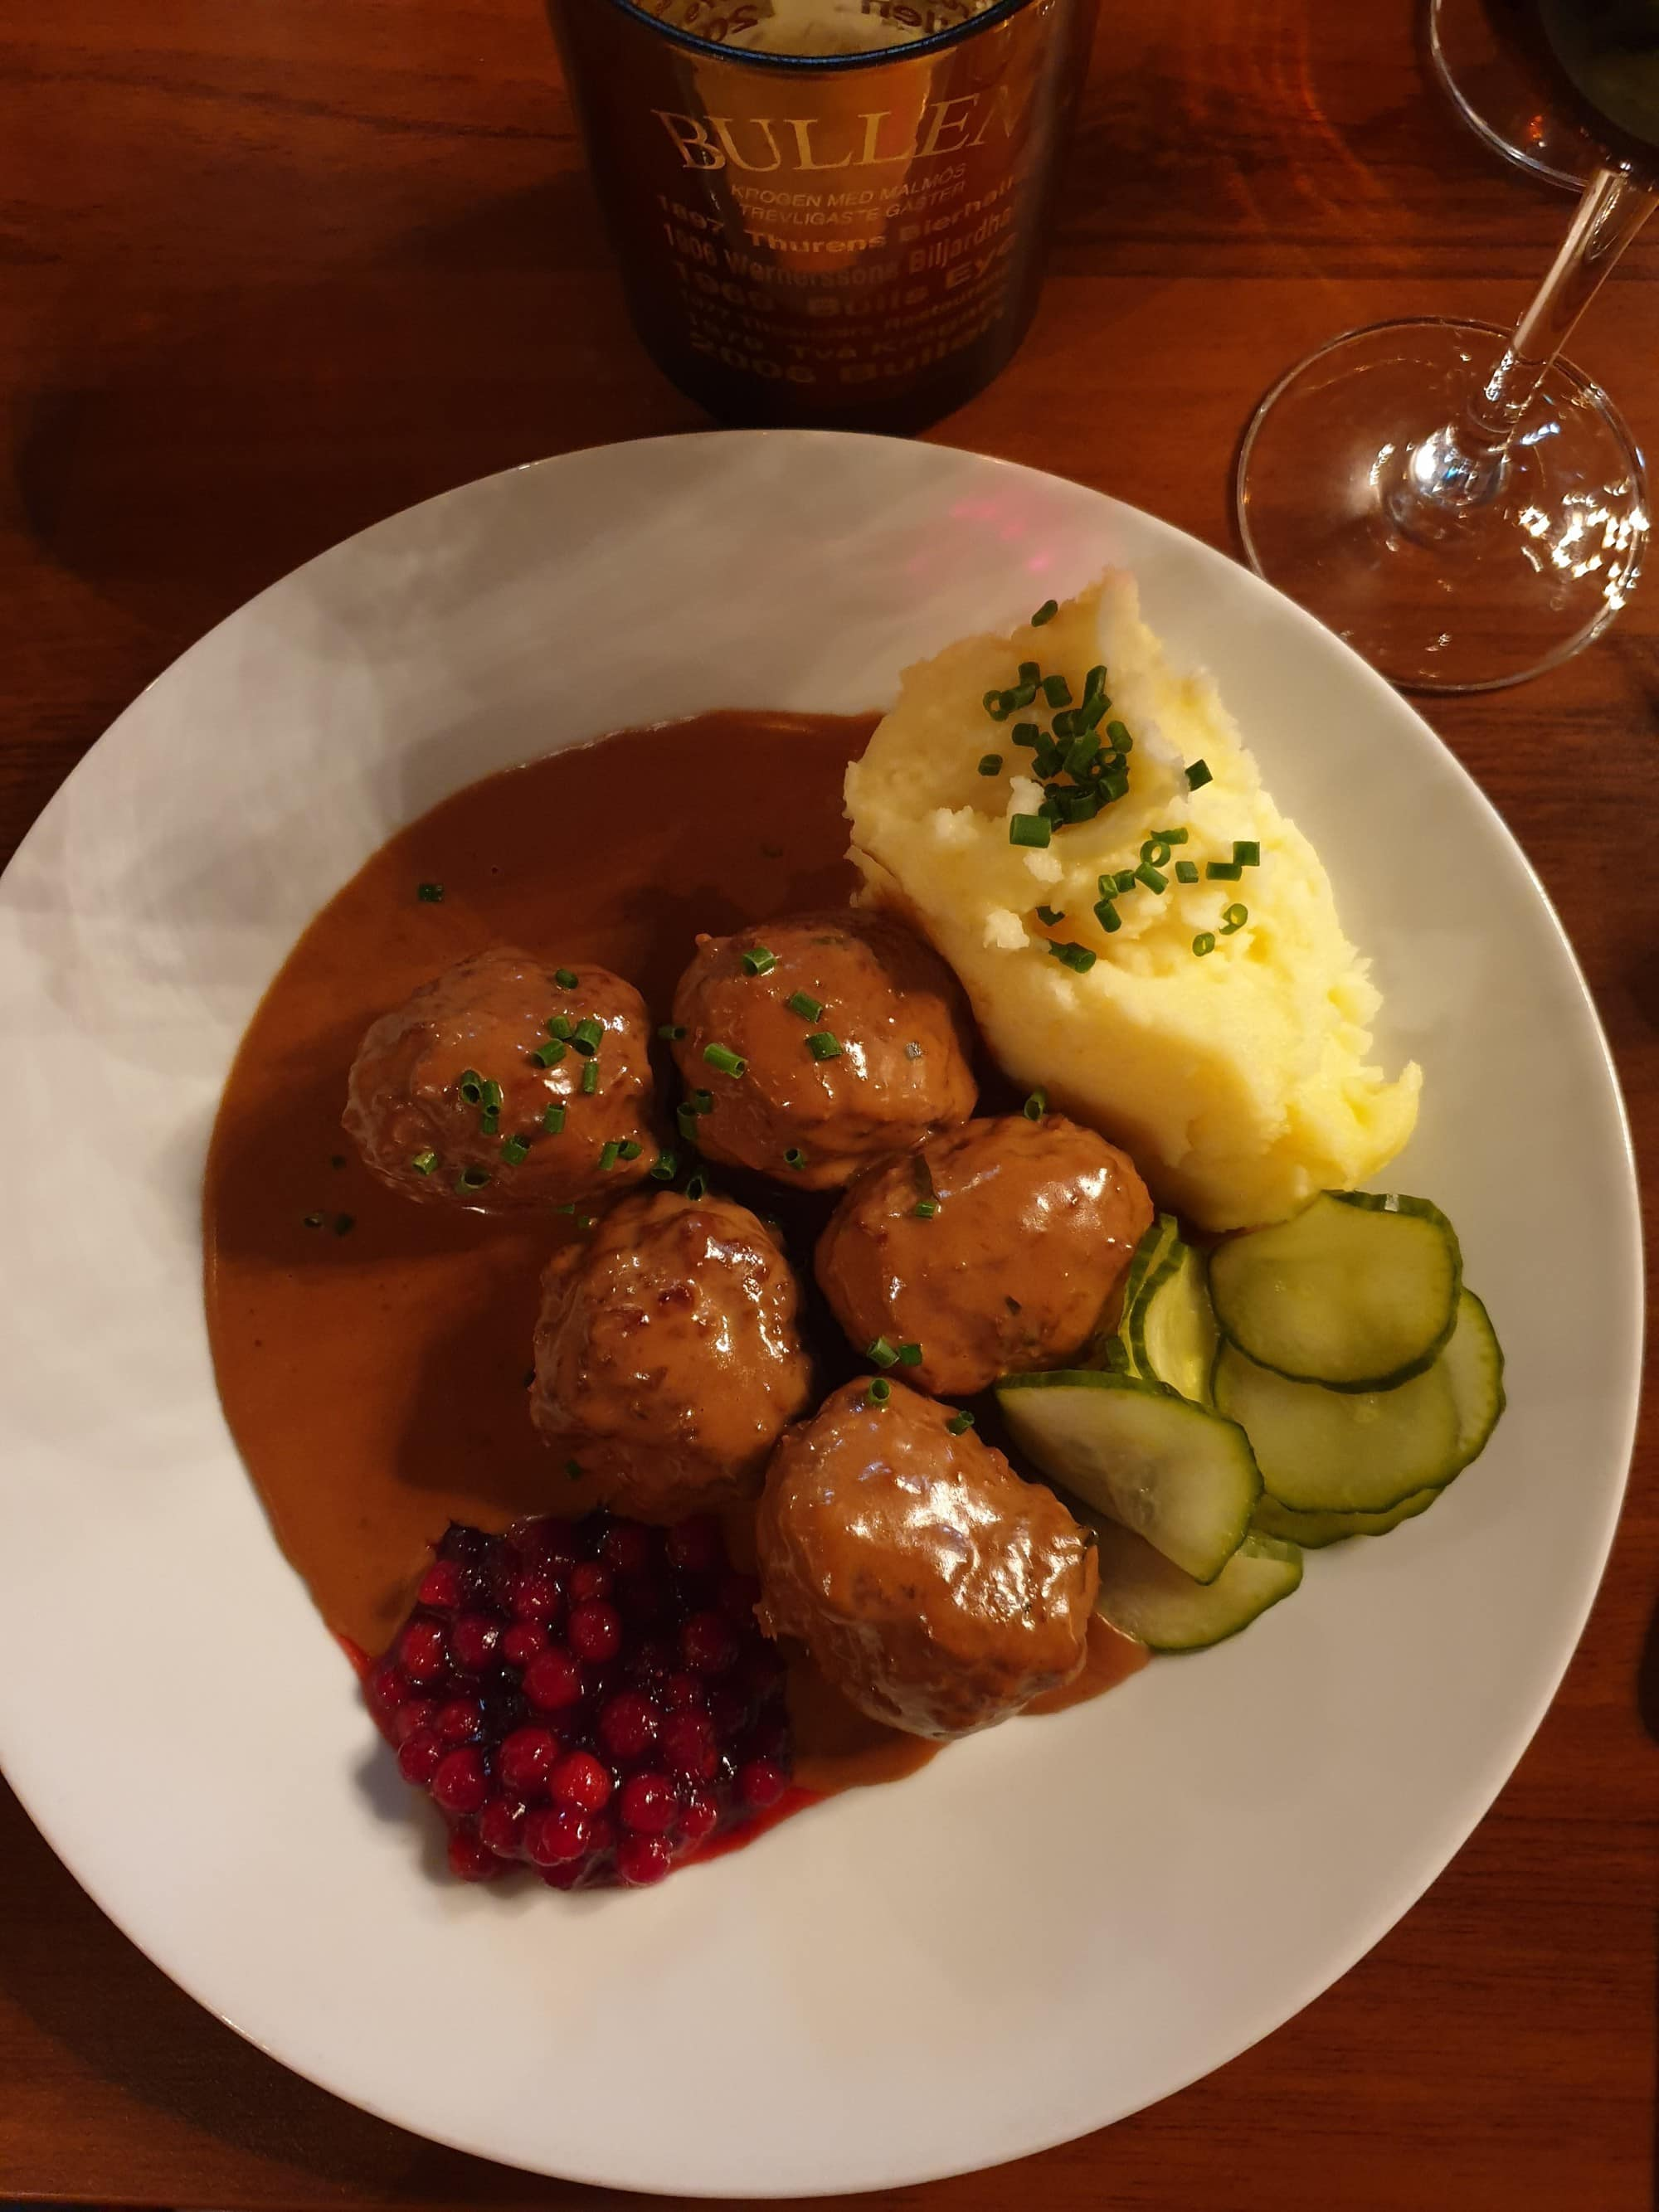 Swedish Meatballs Mashed Potato Lingonberry Jam and Pickled Cucumber at Bullen Malmo